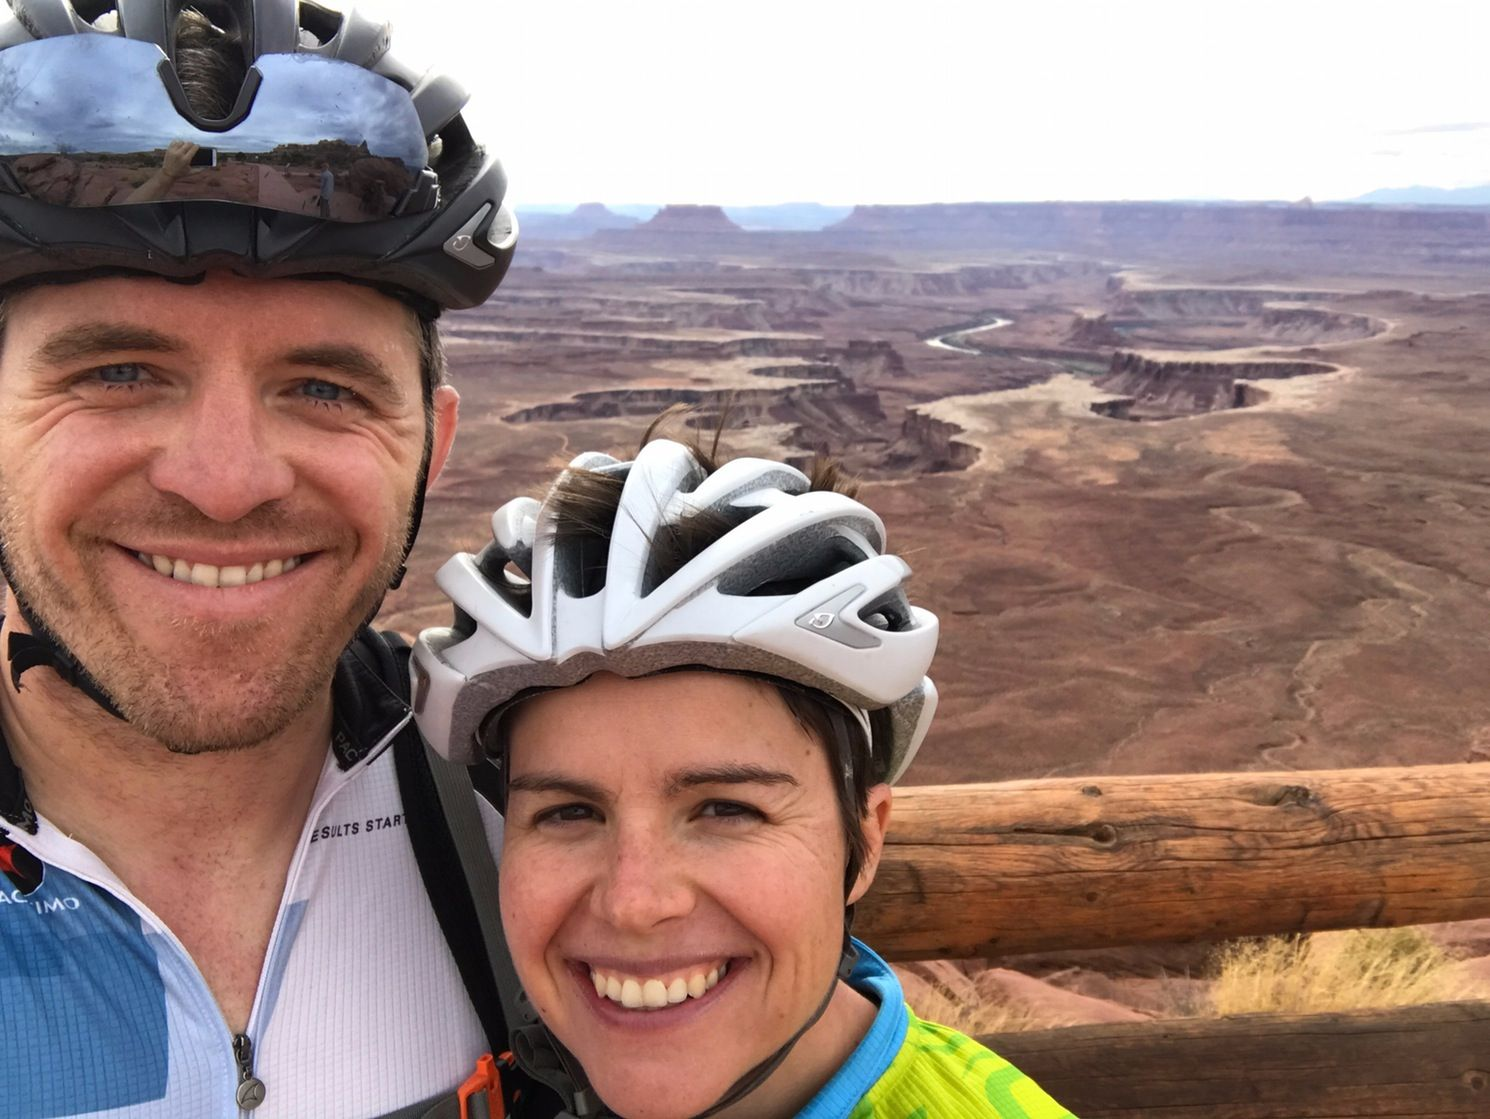 Riding bikes through Canyonlands National Park, Utah (Nov 2016)